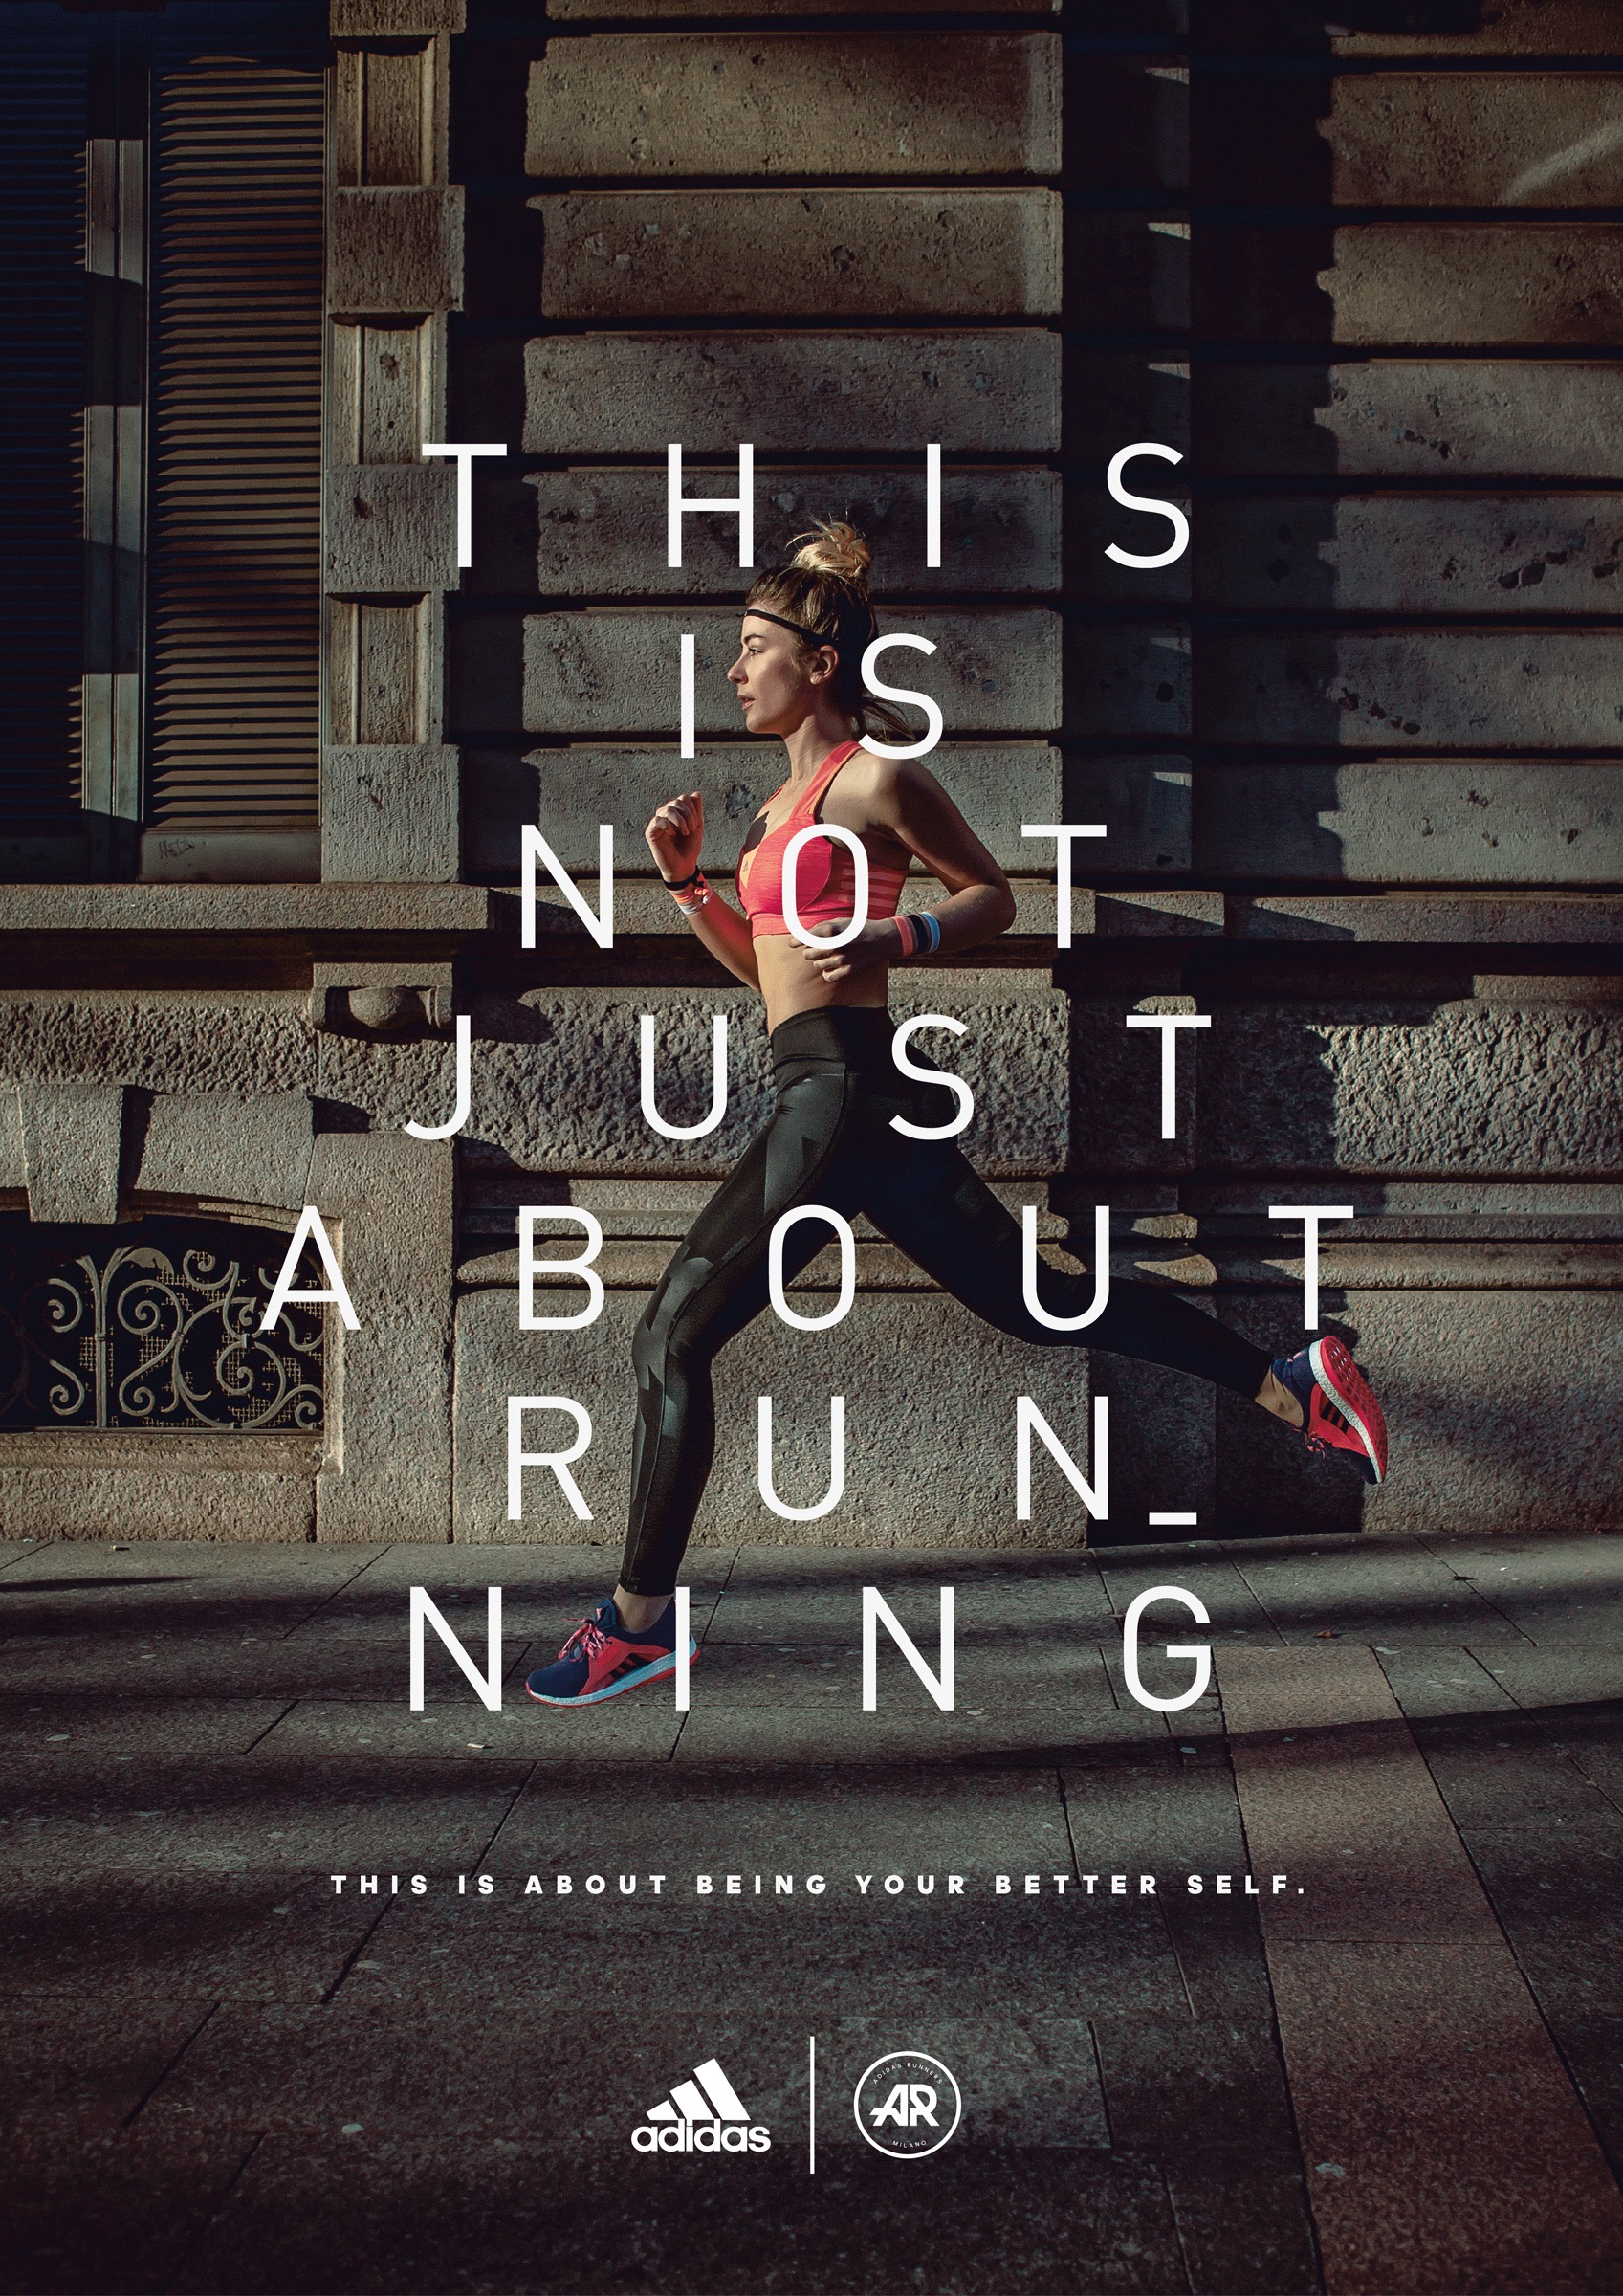 Adidas Print Advert By The Big Now: Running | Ads of the ...